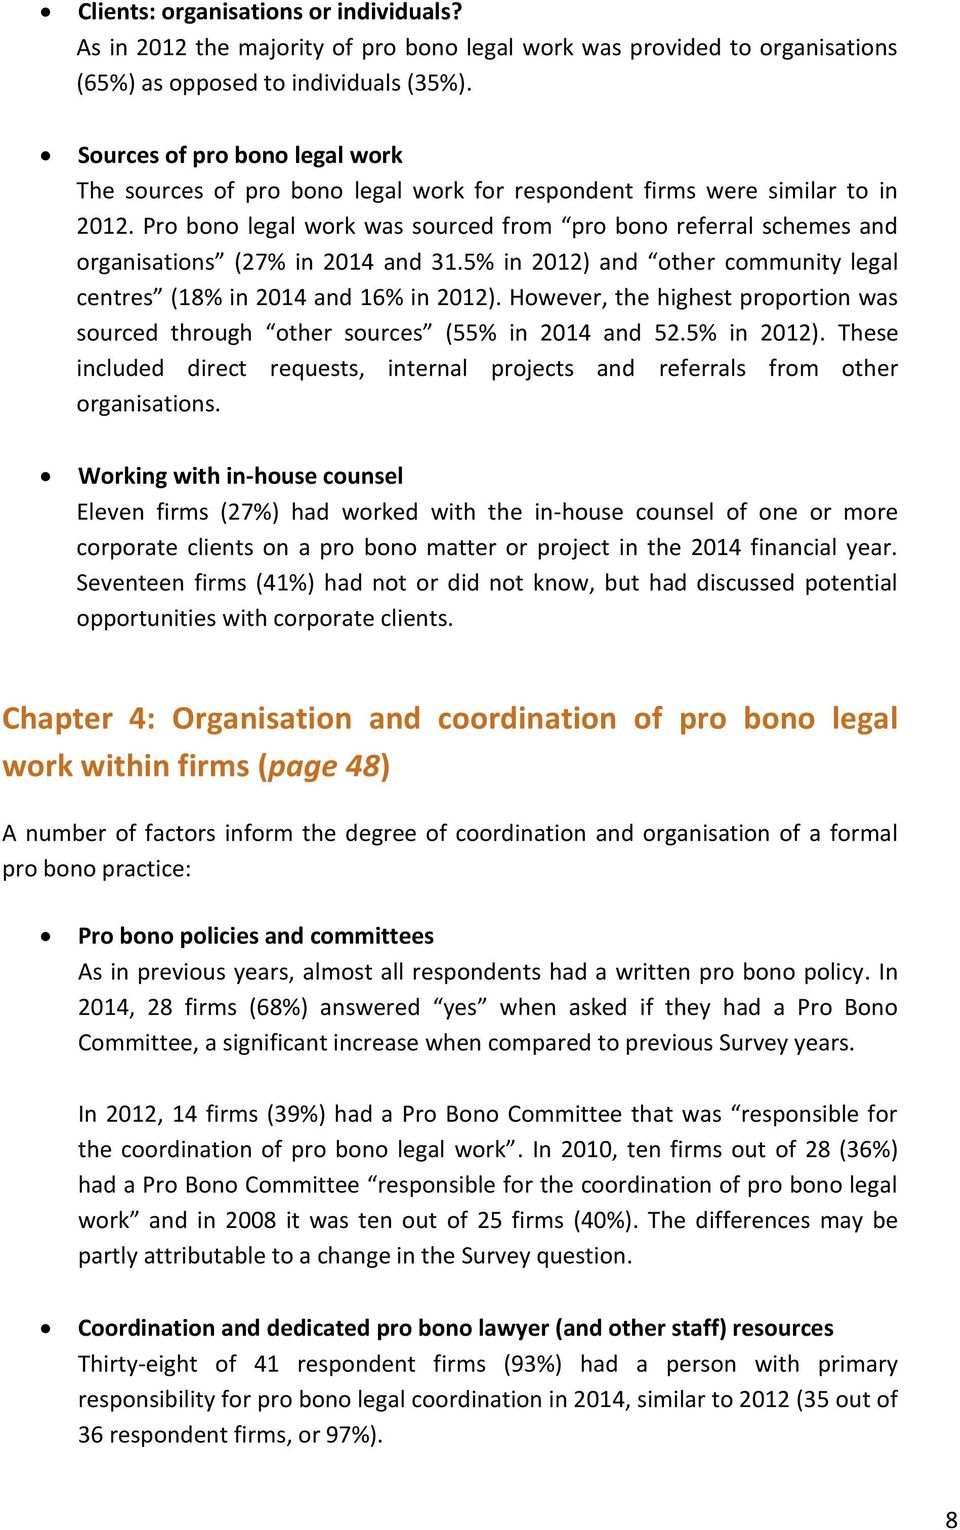 Pro bono legal work was sourced from pro bono referral schemes and organisations (27% in 2014 and 31.5% in 2012) and other community legal centres (18% in 2014 and 16% in 2012).